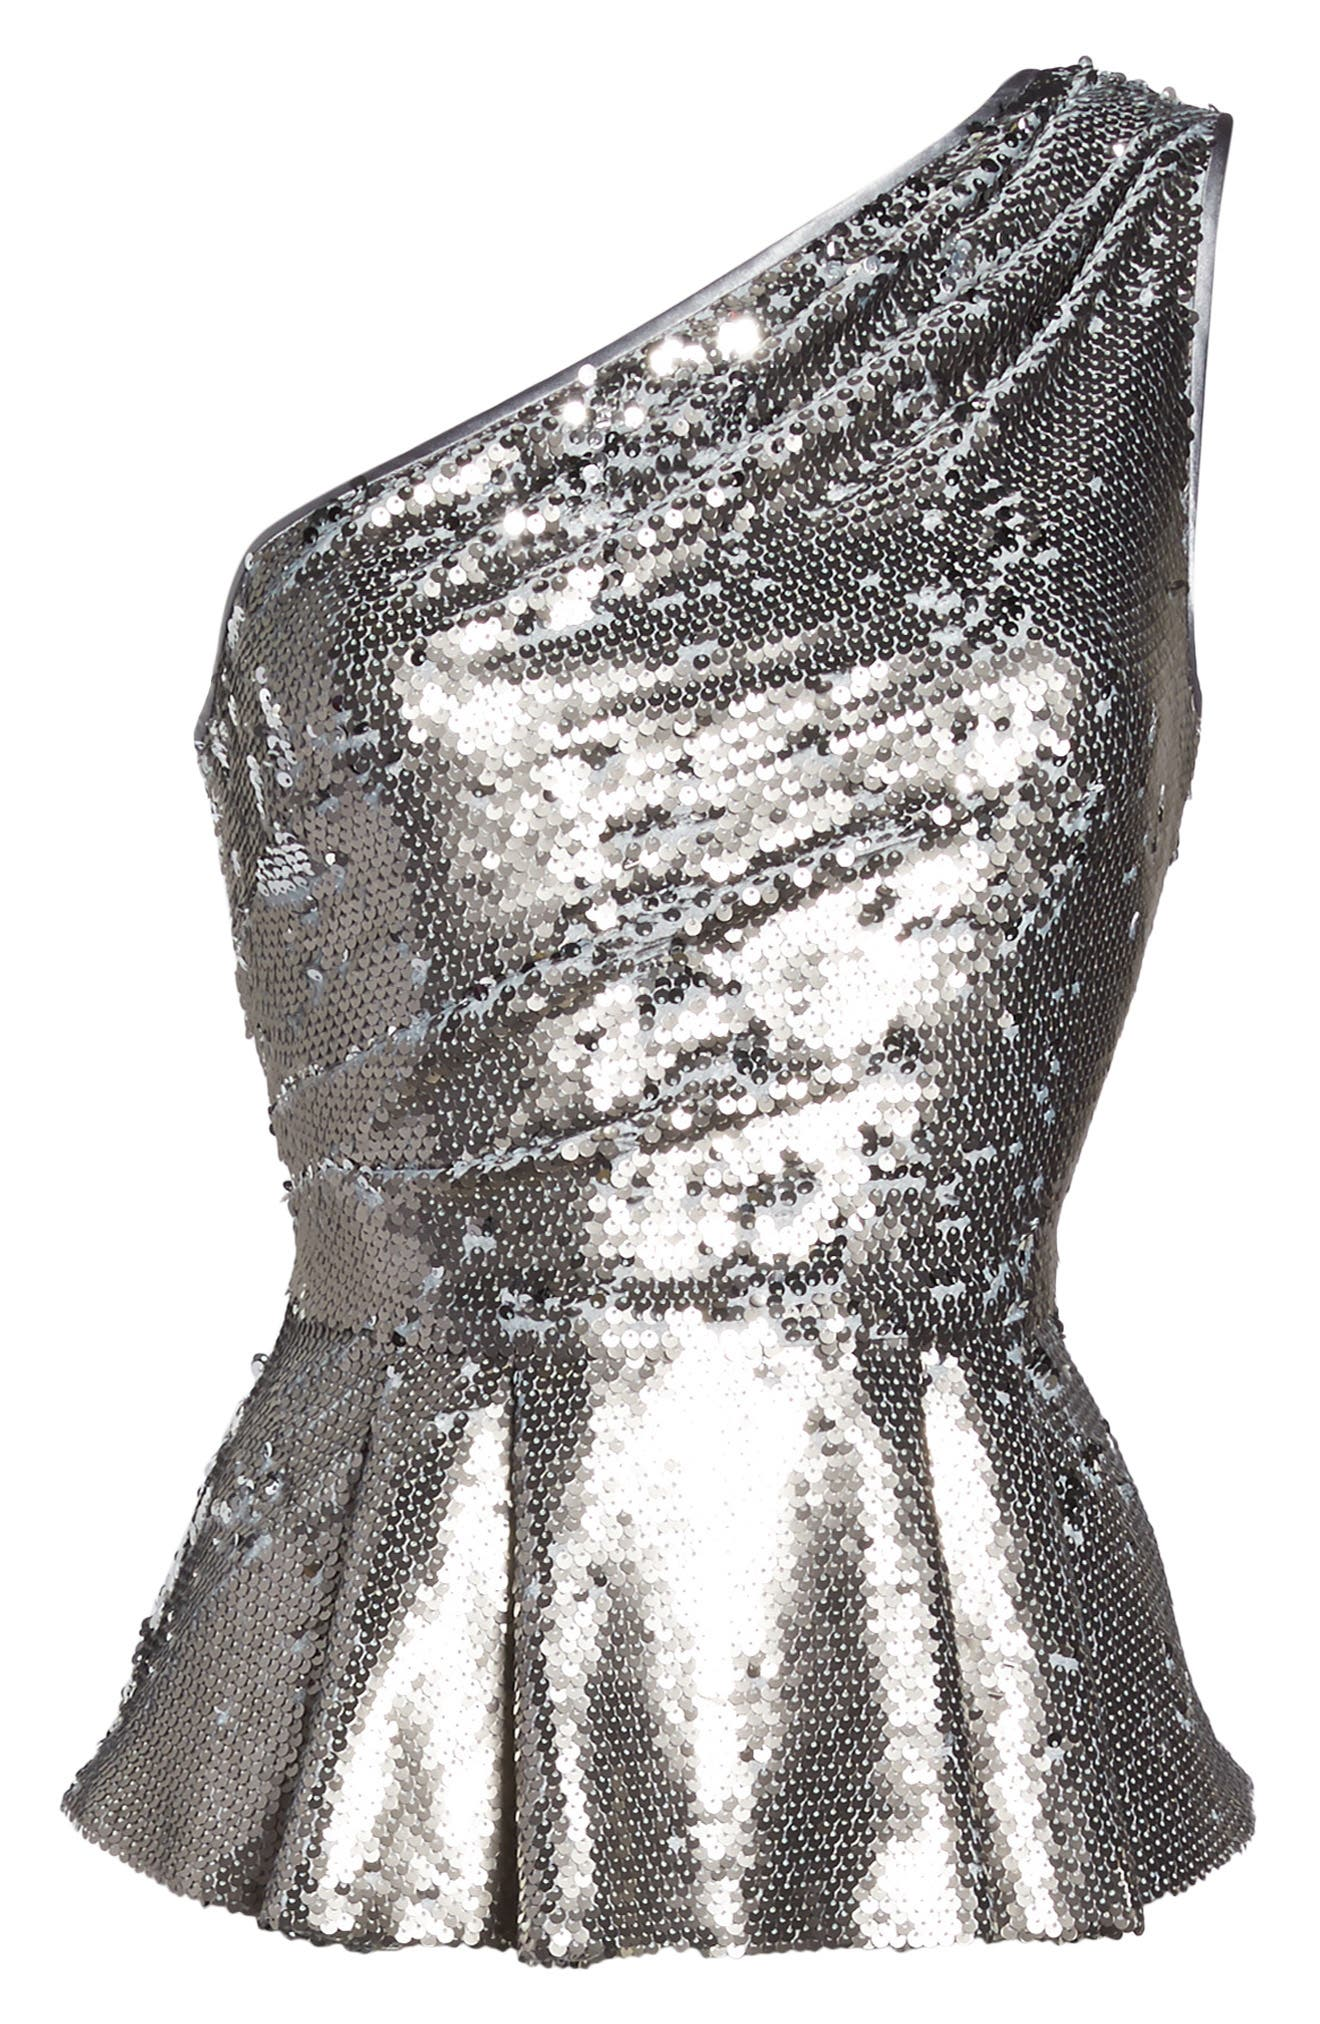 One-Shoulder Sequin Peplum Top,                             Alternate thumbnail 8, color,                             Silver